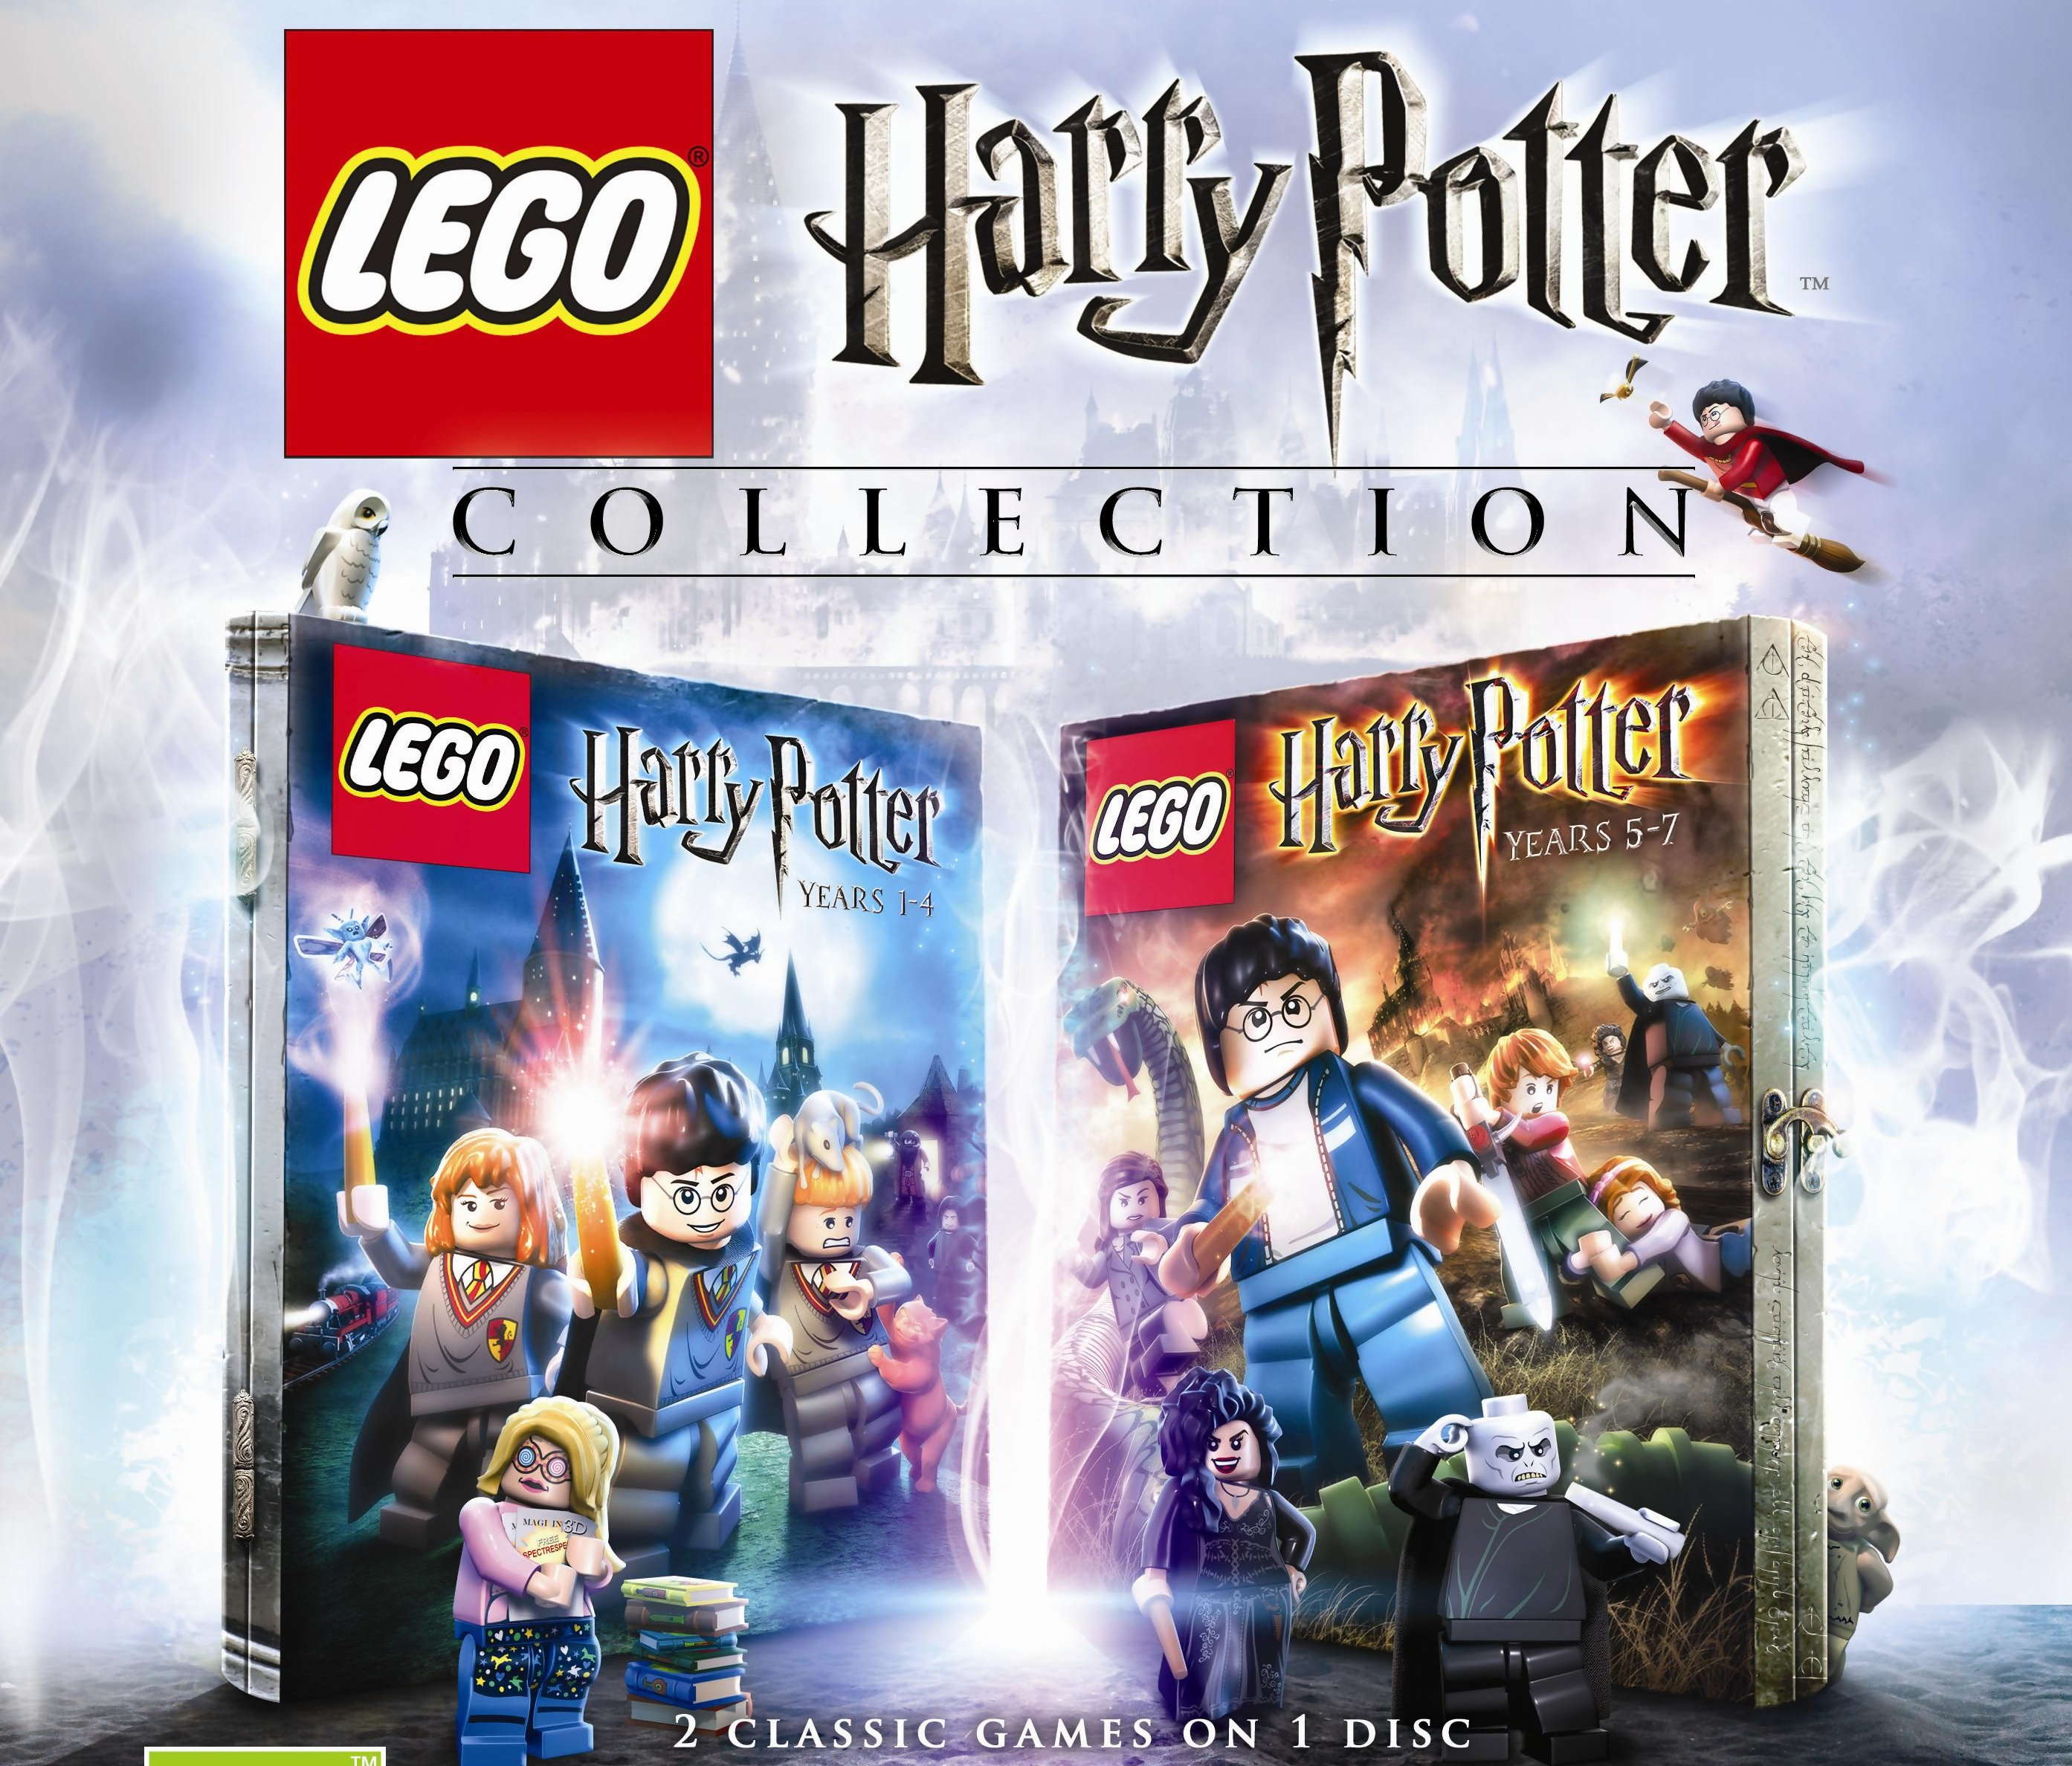 lego-harry-potter-collect-57d1855d0c5bf.jpg